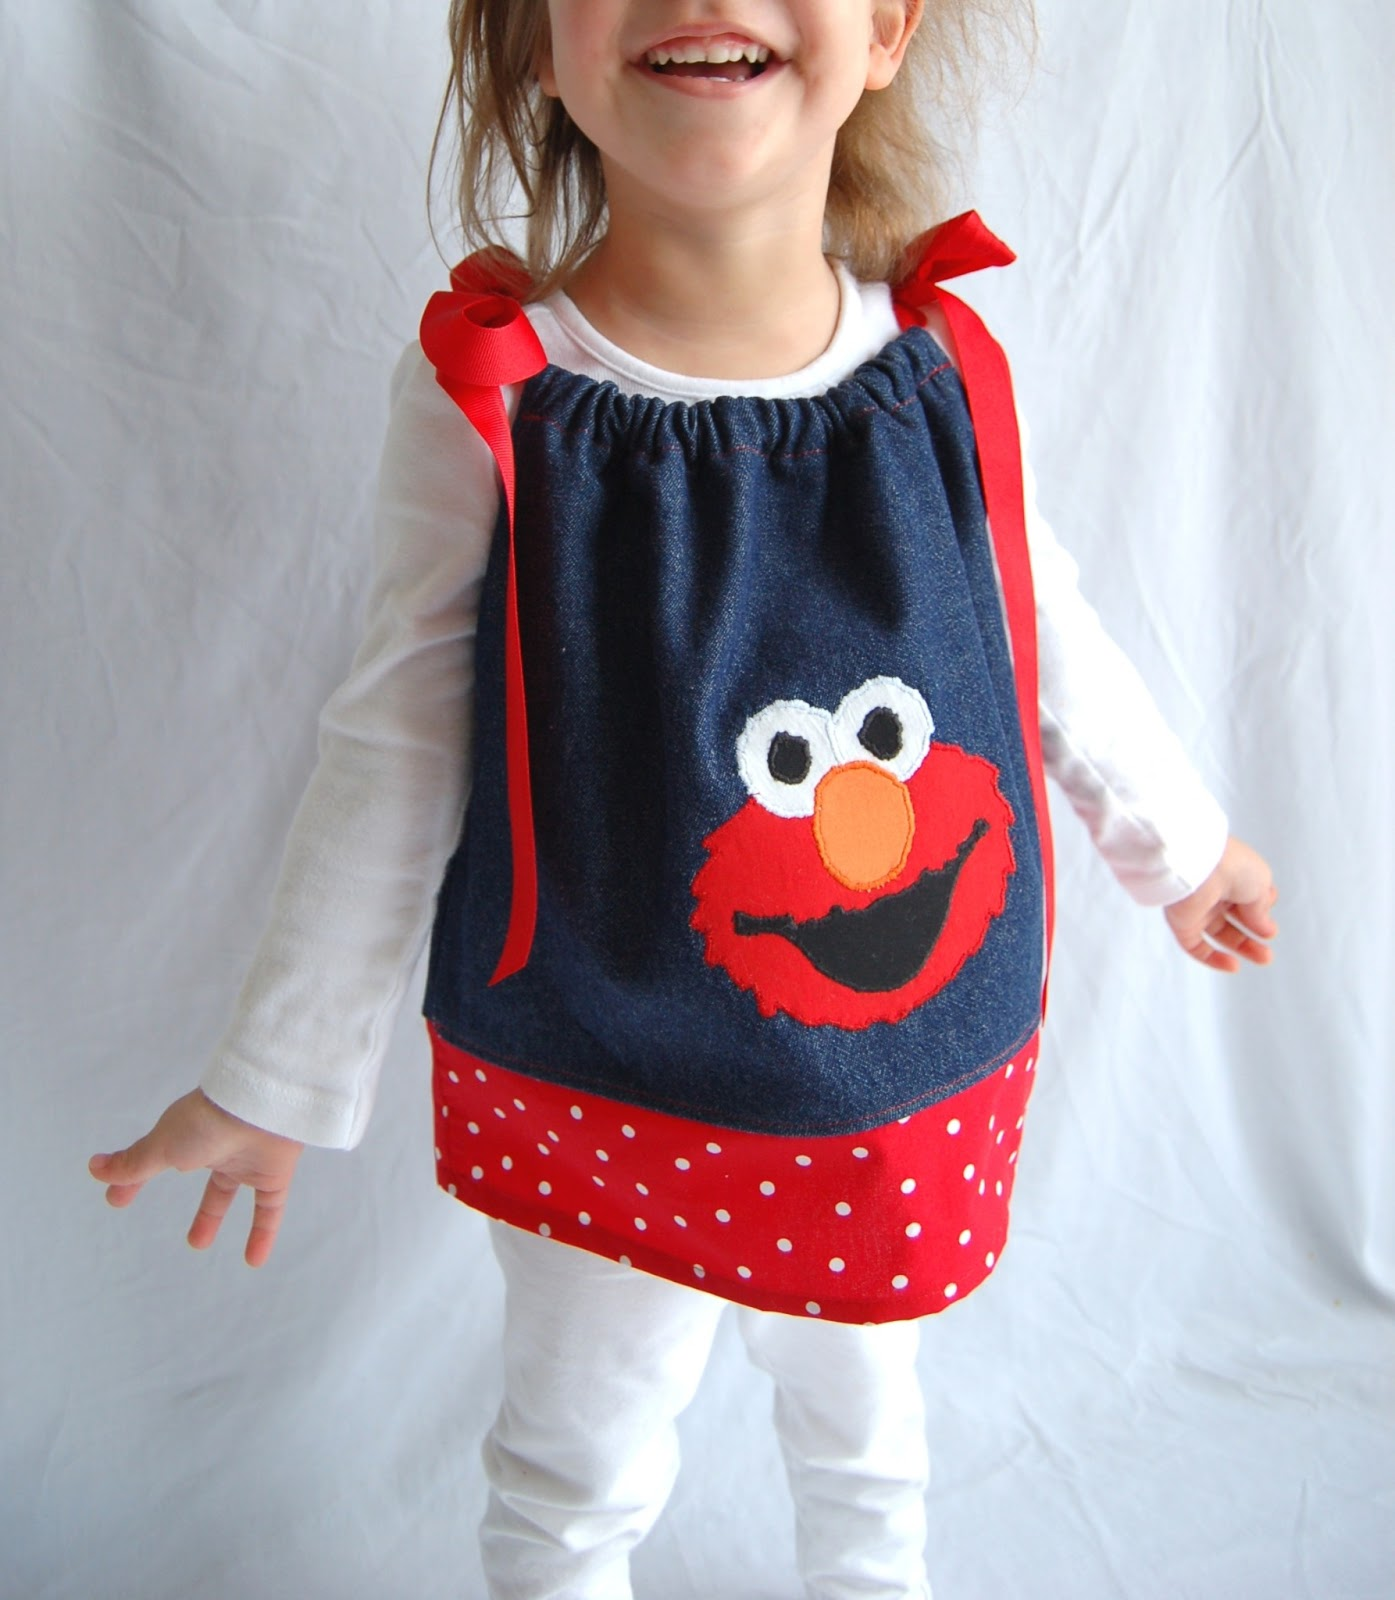 Her Sweet Little Girls Were Celebrating Their 2nd Birthday Elmo Style And She Wanted Some Fun Tops For Them To Wear The Party